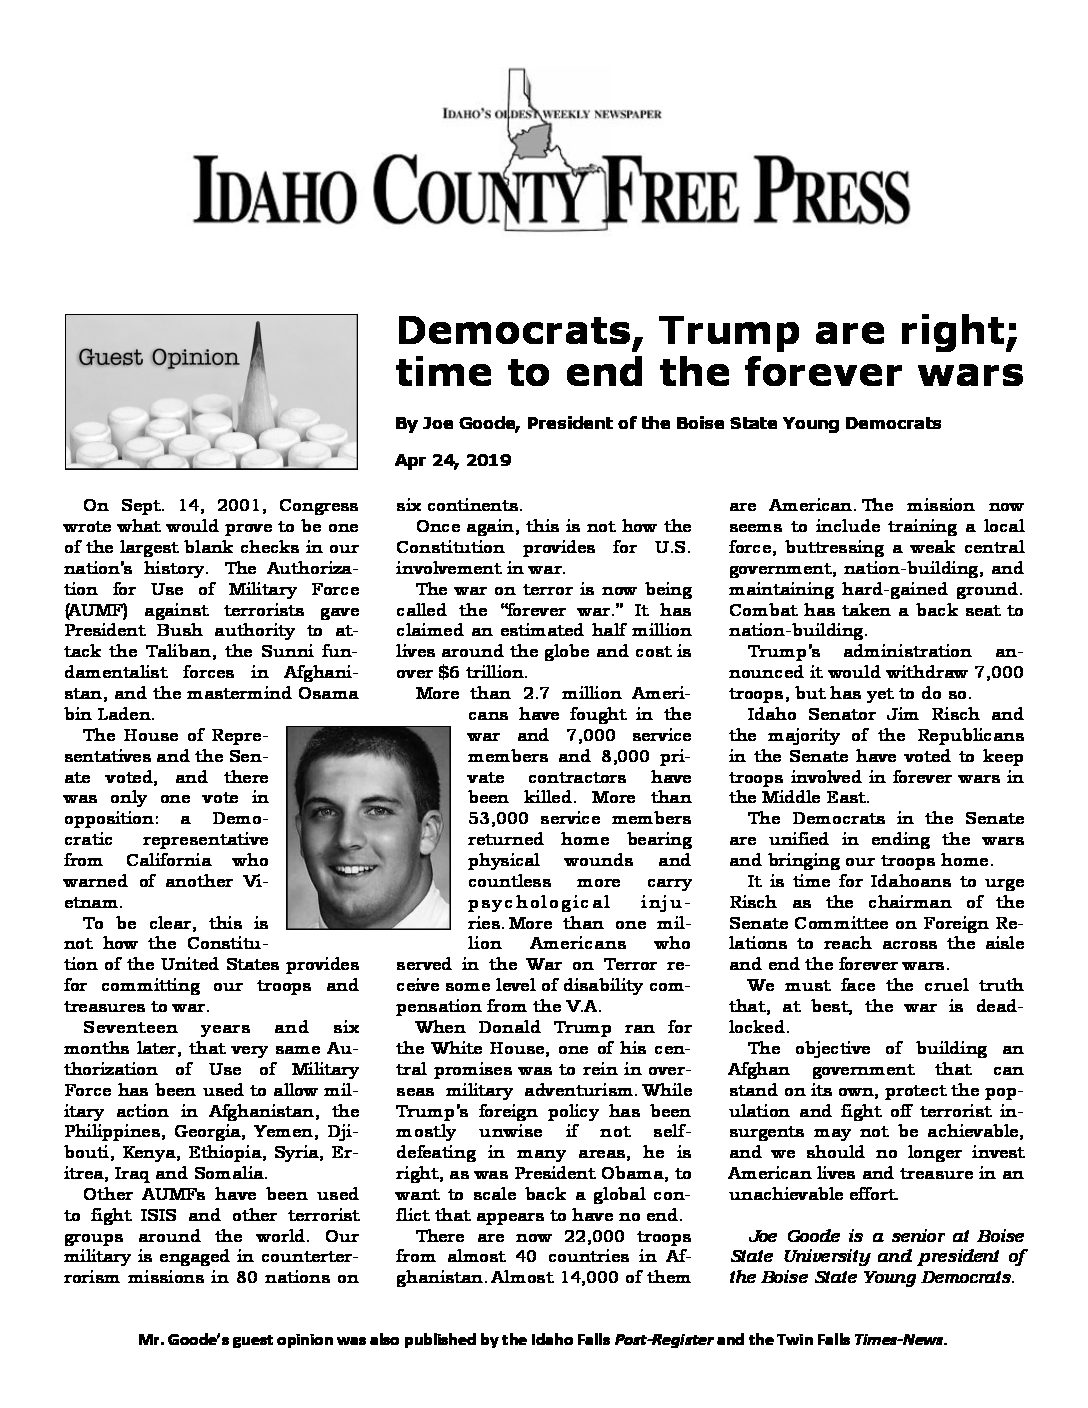 Idaho County Free Press – Democrats, Trump are right – time to end the forever wars